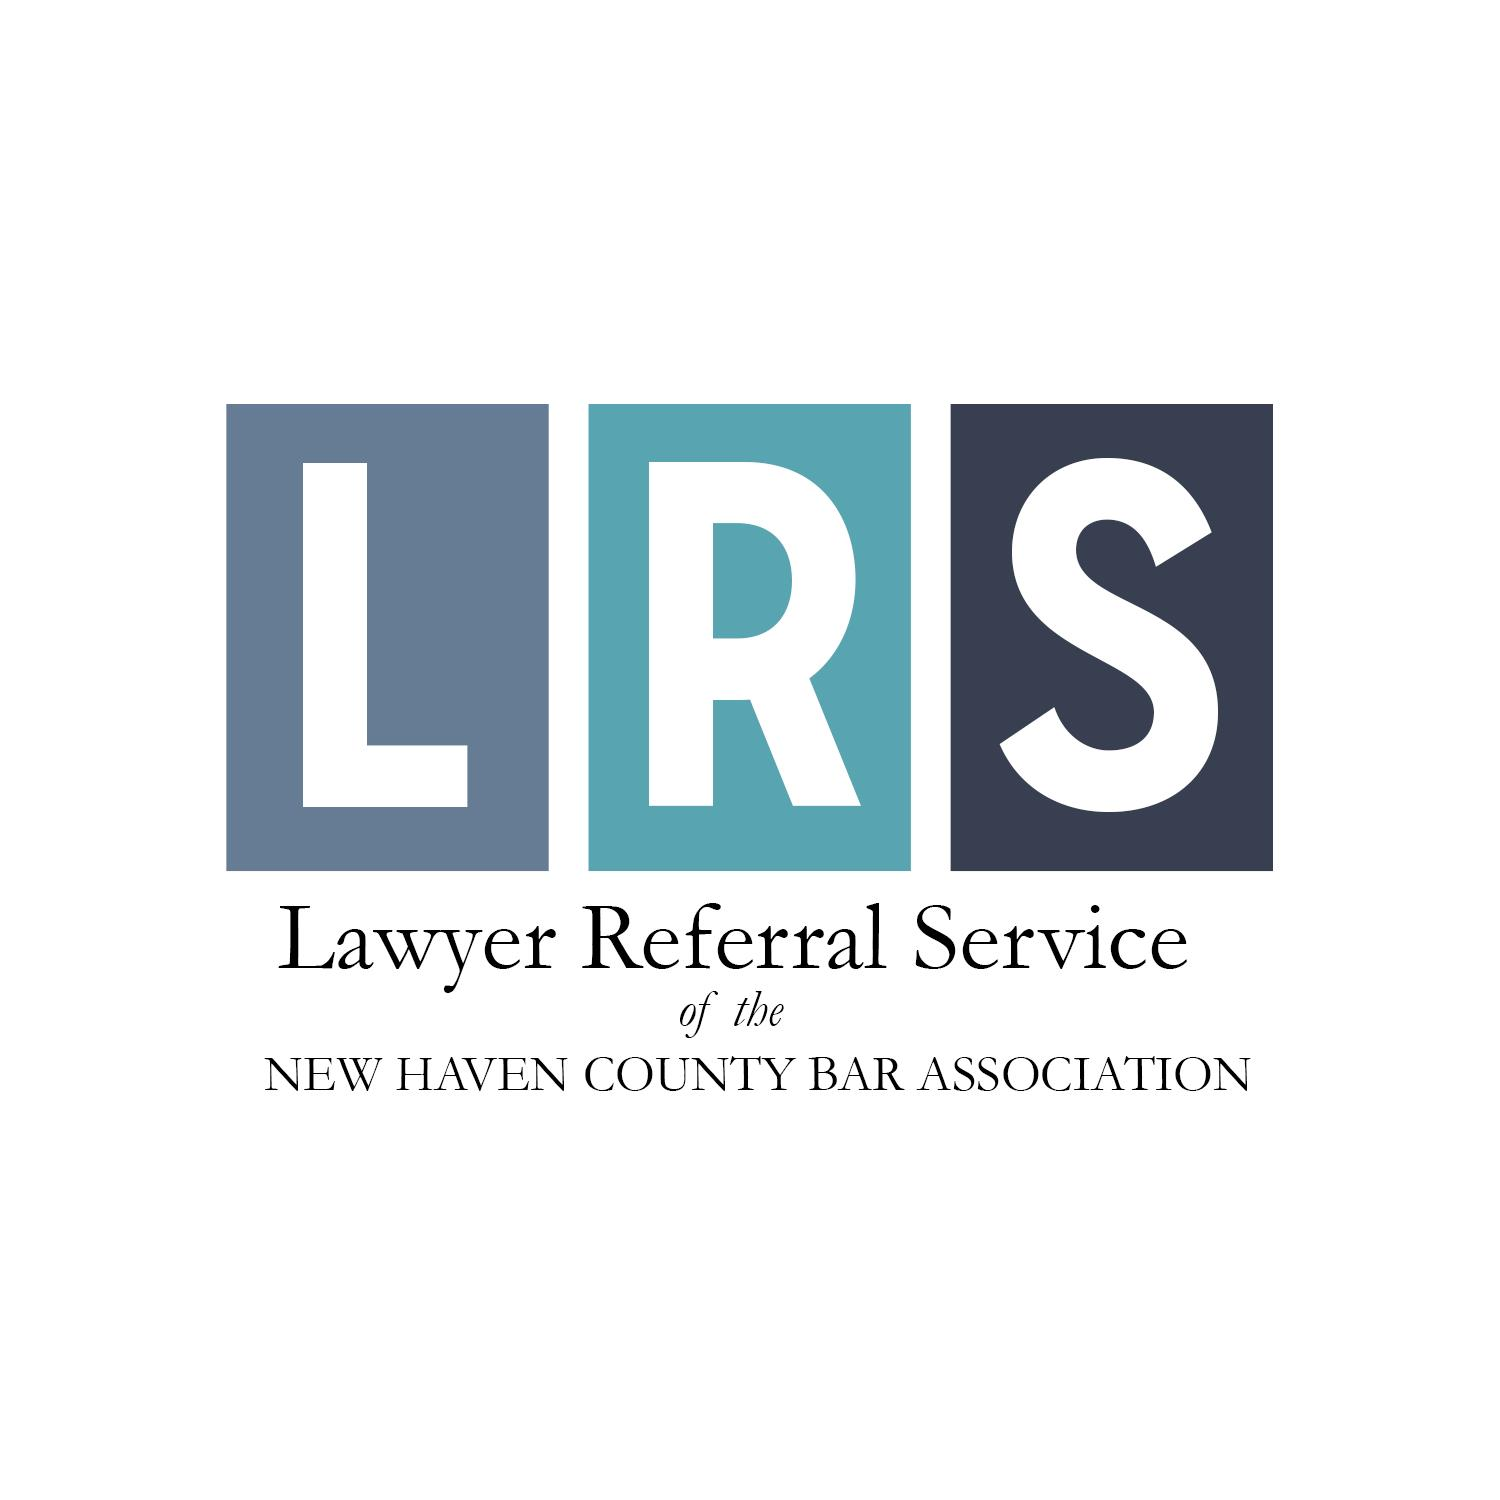 Connecticut new haven county northford - The Nhcba Offers Two Ways To Find A Lawyer